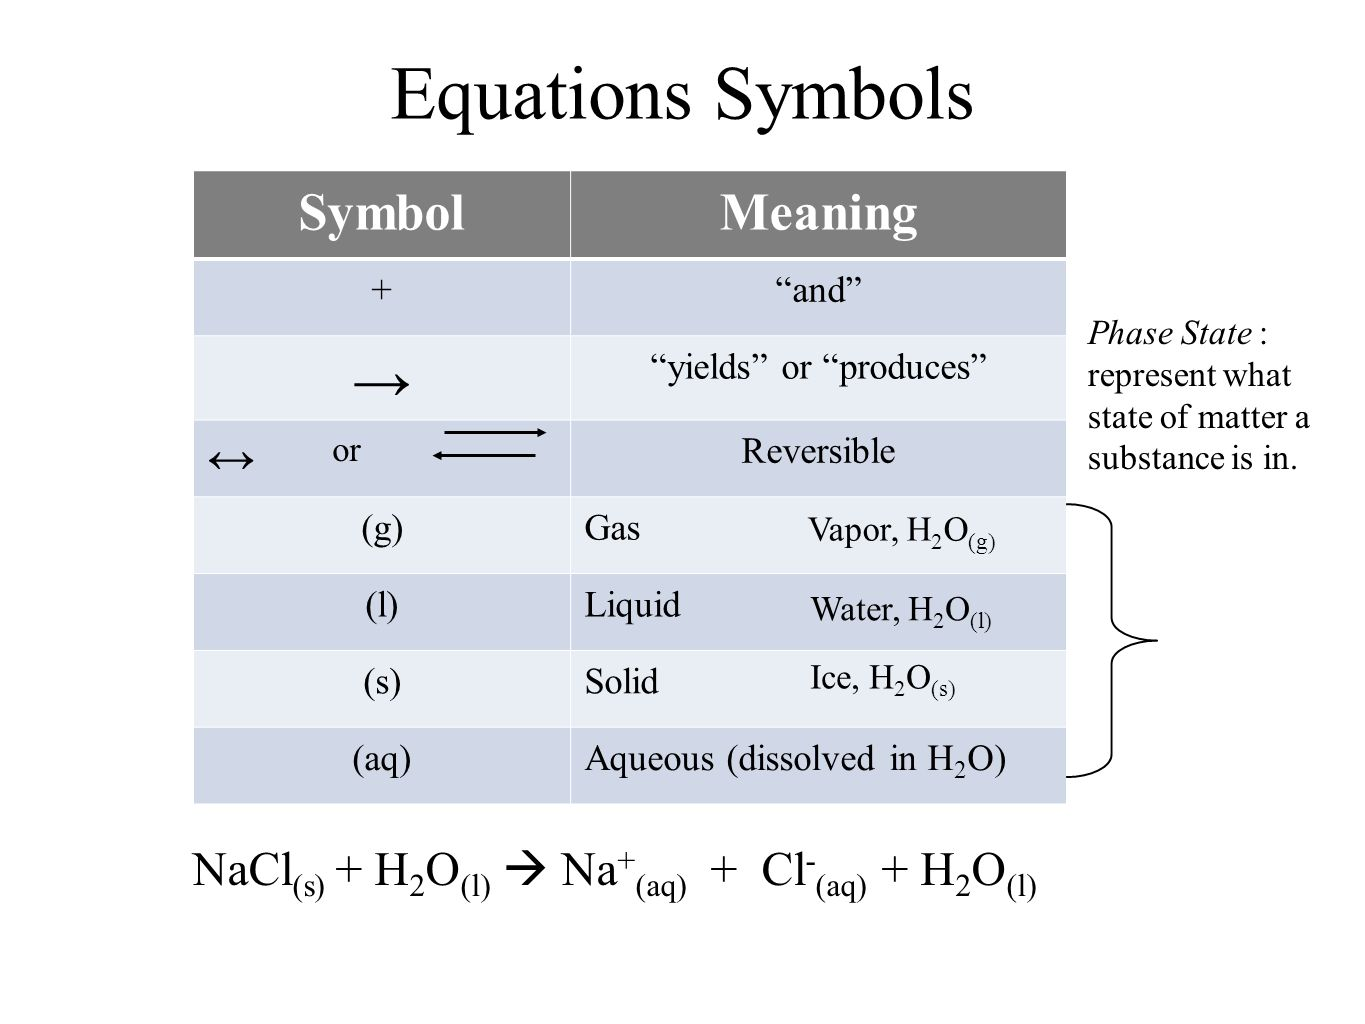 Mass relationships in chemical reactions ppt download 52 yields or produces equations symbols symbol meaning biocorpaavc Gallery